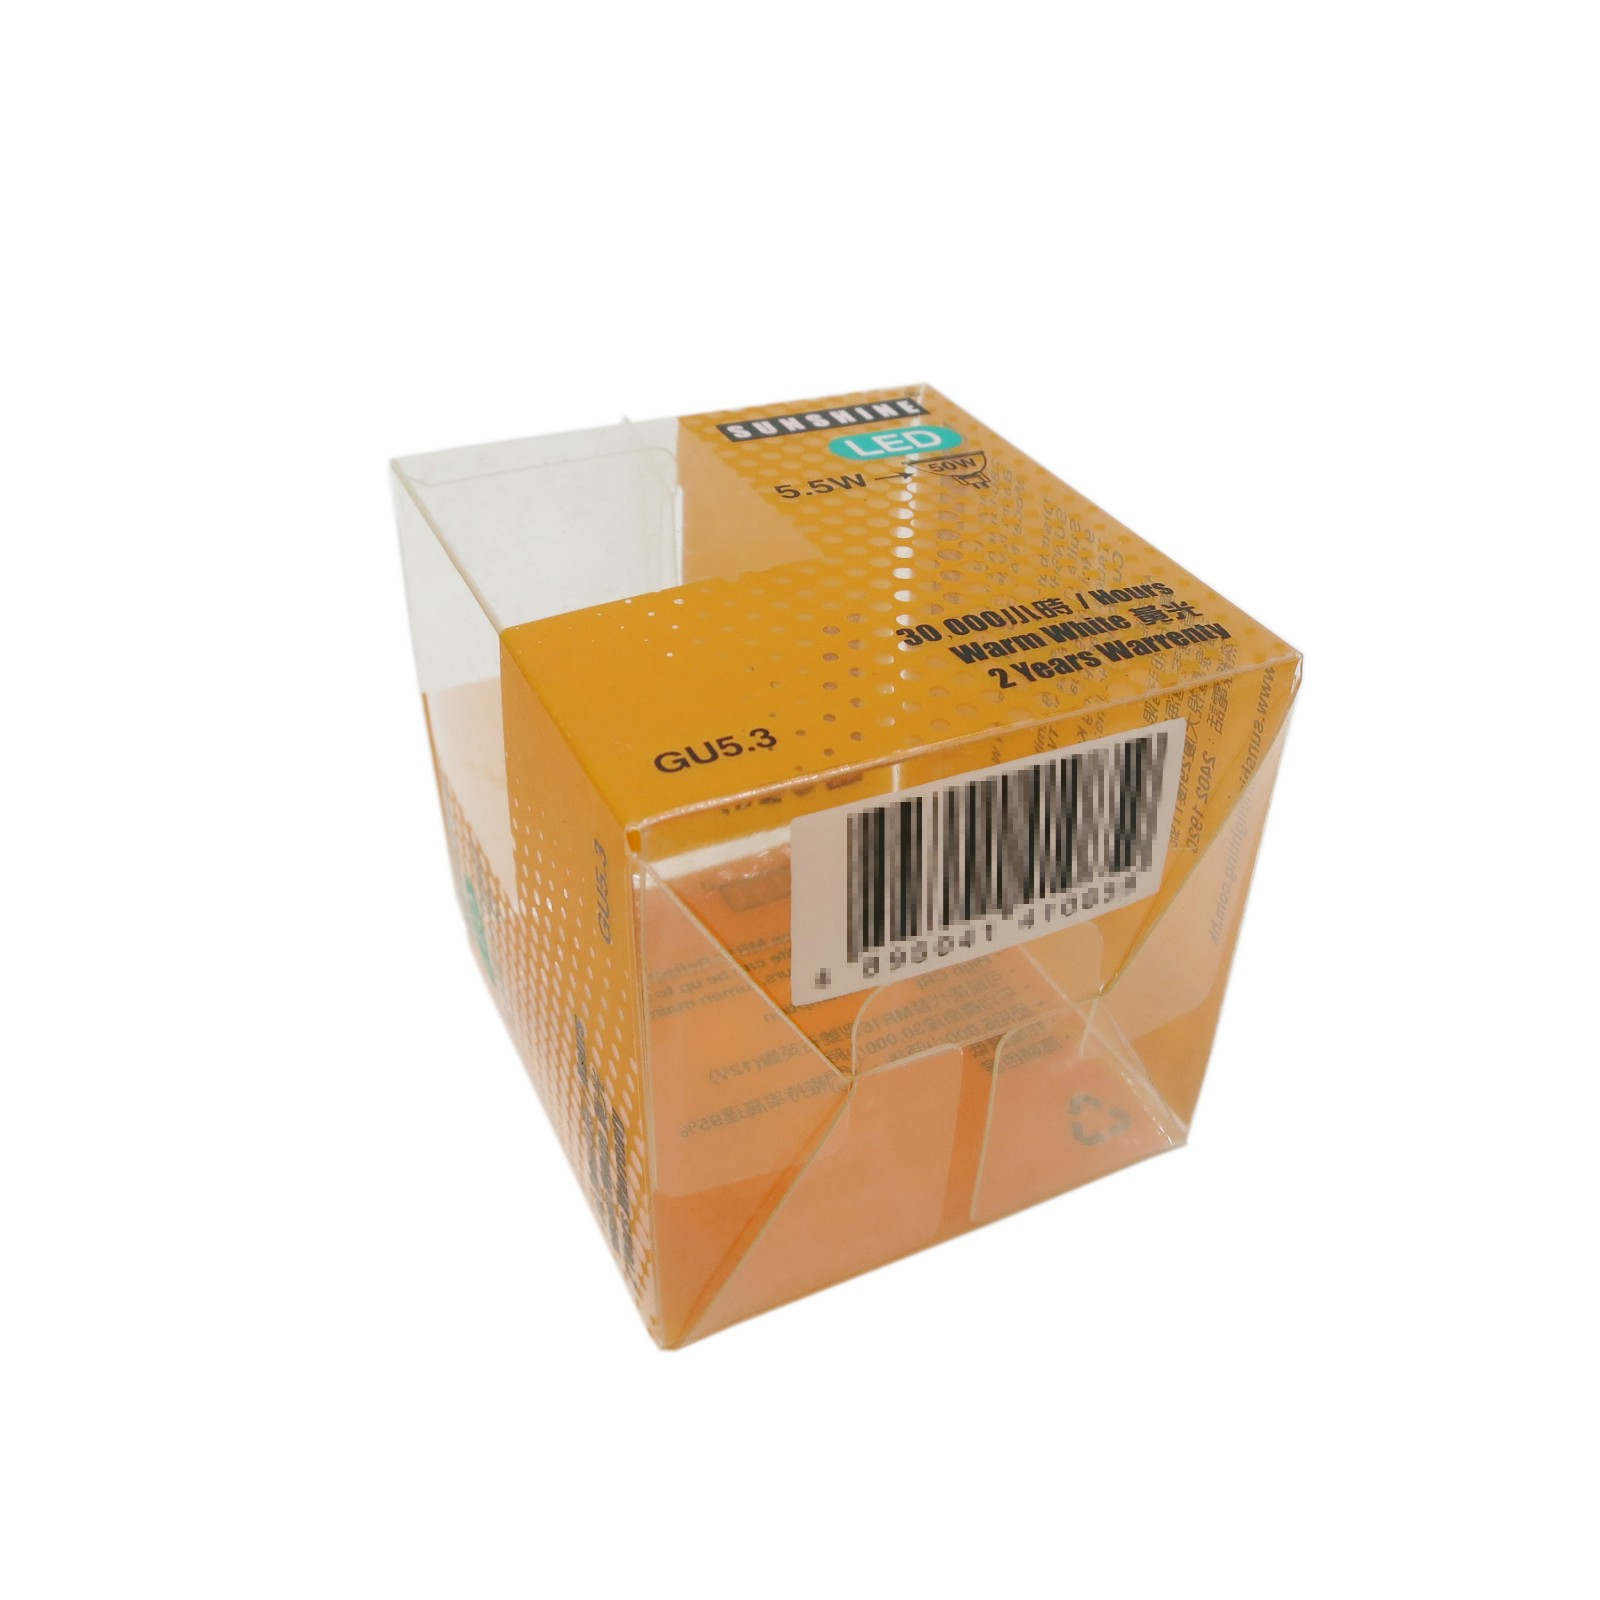 Yijianxing Plastic Products first-rate plastic box packaging for wholesale for decor-3